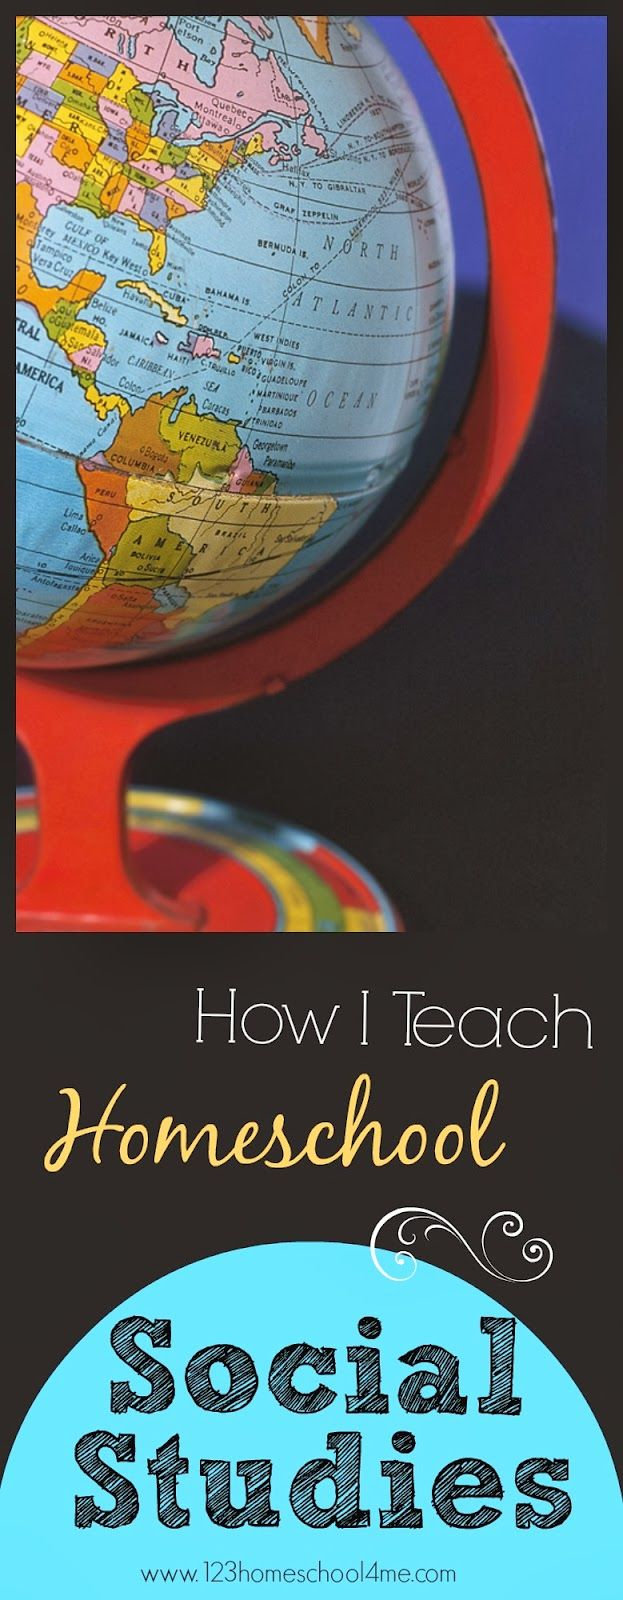 ❥ How I Teach Homeschool Social Studies ❥ a huge resource for homeschoolers includes: how I teach social studies to children in different grades at once, how we plan our days, what curriculum we use, free hands on history unit studies including lots of fun ideas, resources, and free printables.